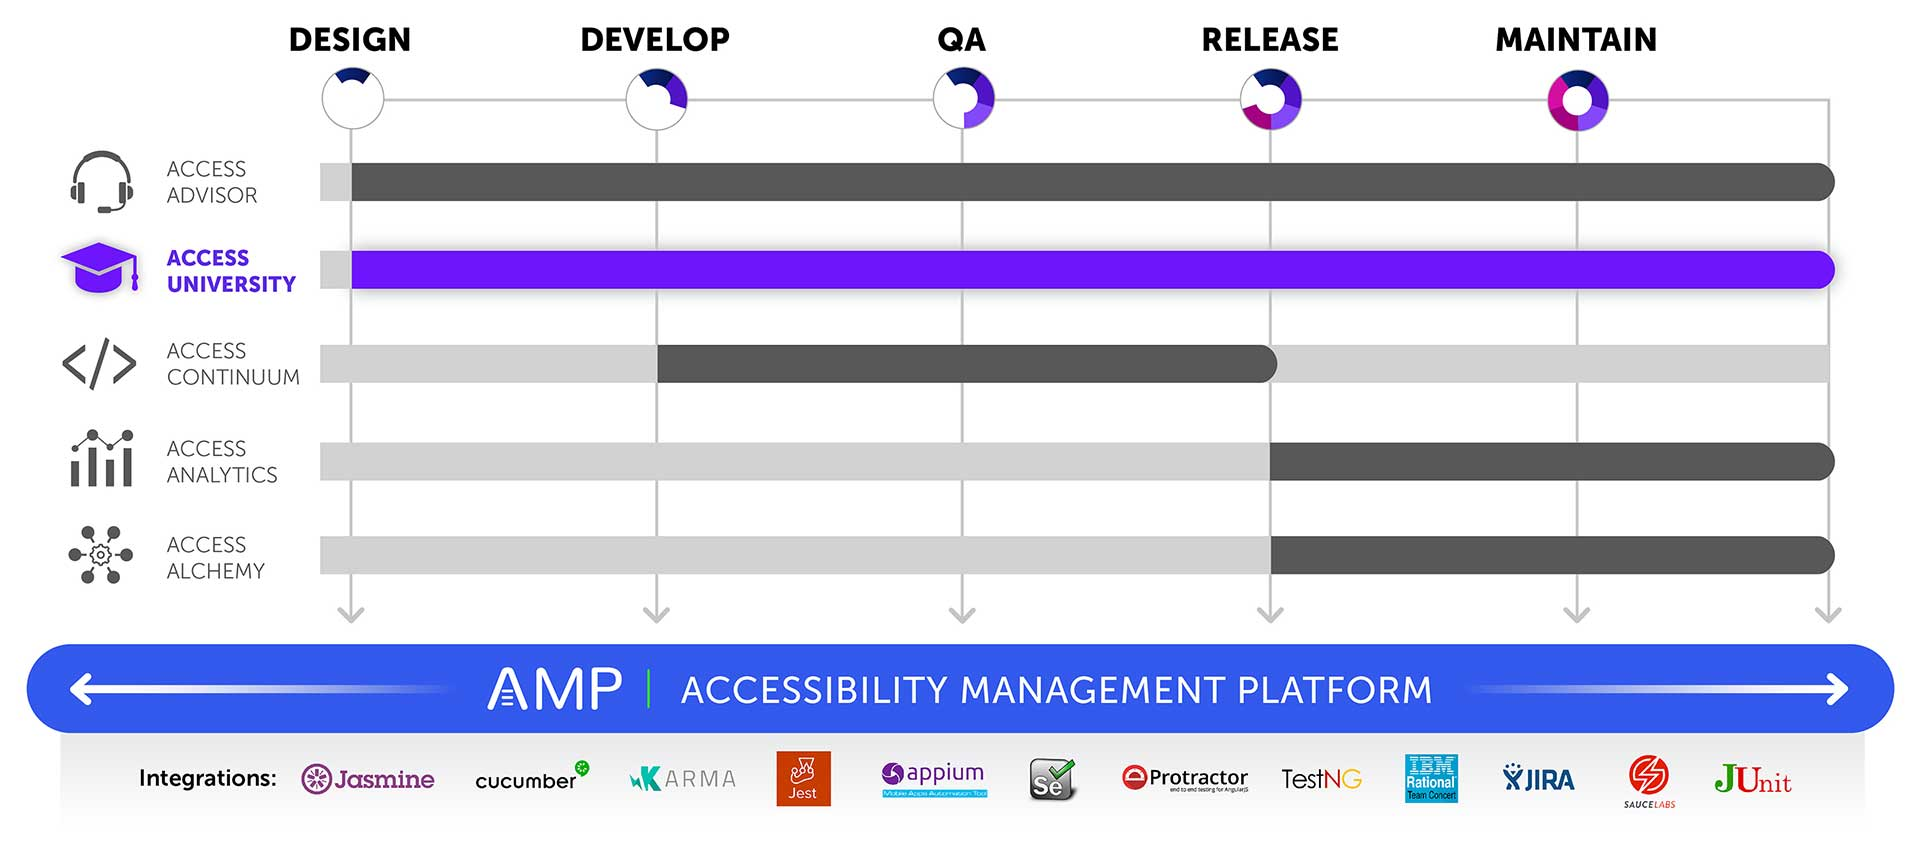 Graphic showing that AMP is the platform for all products and covers all phases of the software development lifecycle with integrations for Jasmine, Cucumber, Karma, Jest, Appium, Selenium, Protactor, TestNG, IBM Rational Team Concert, JIRA, JUnit, and Sauce Labs. Access University is shown highlighted and covers all phases as well.